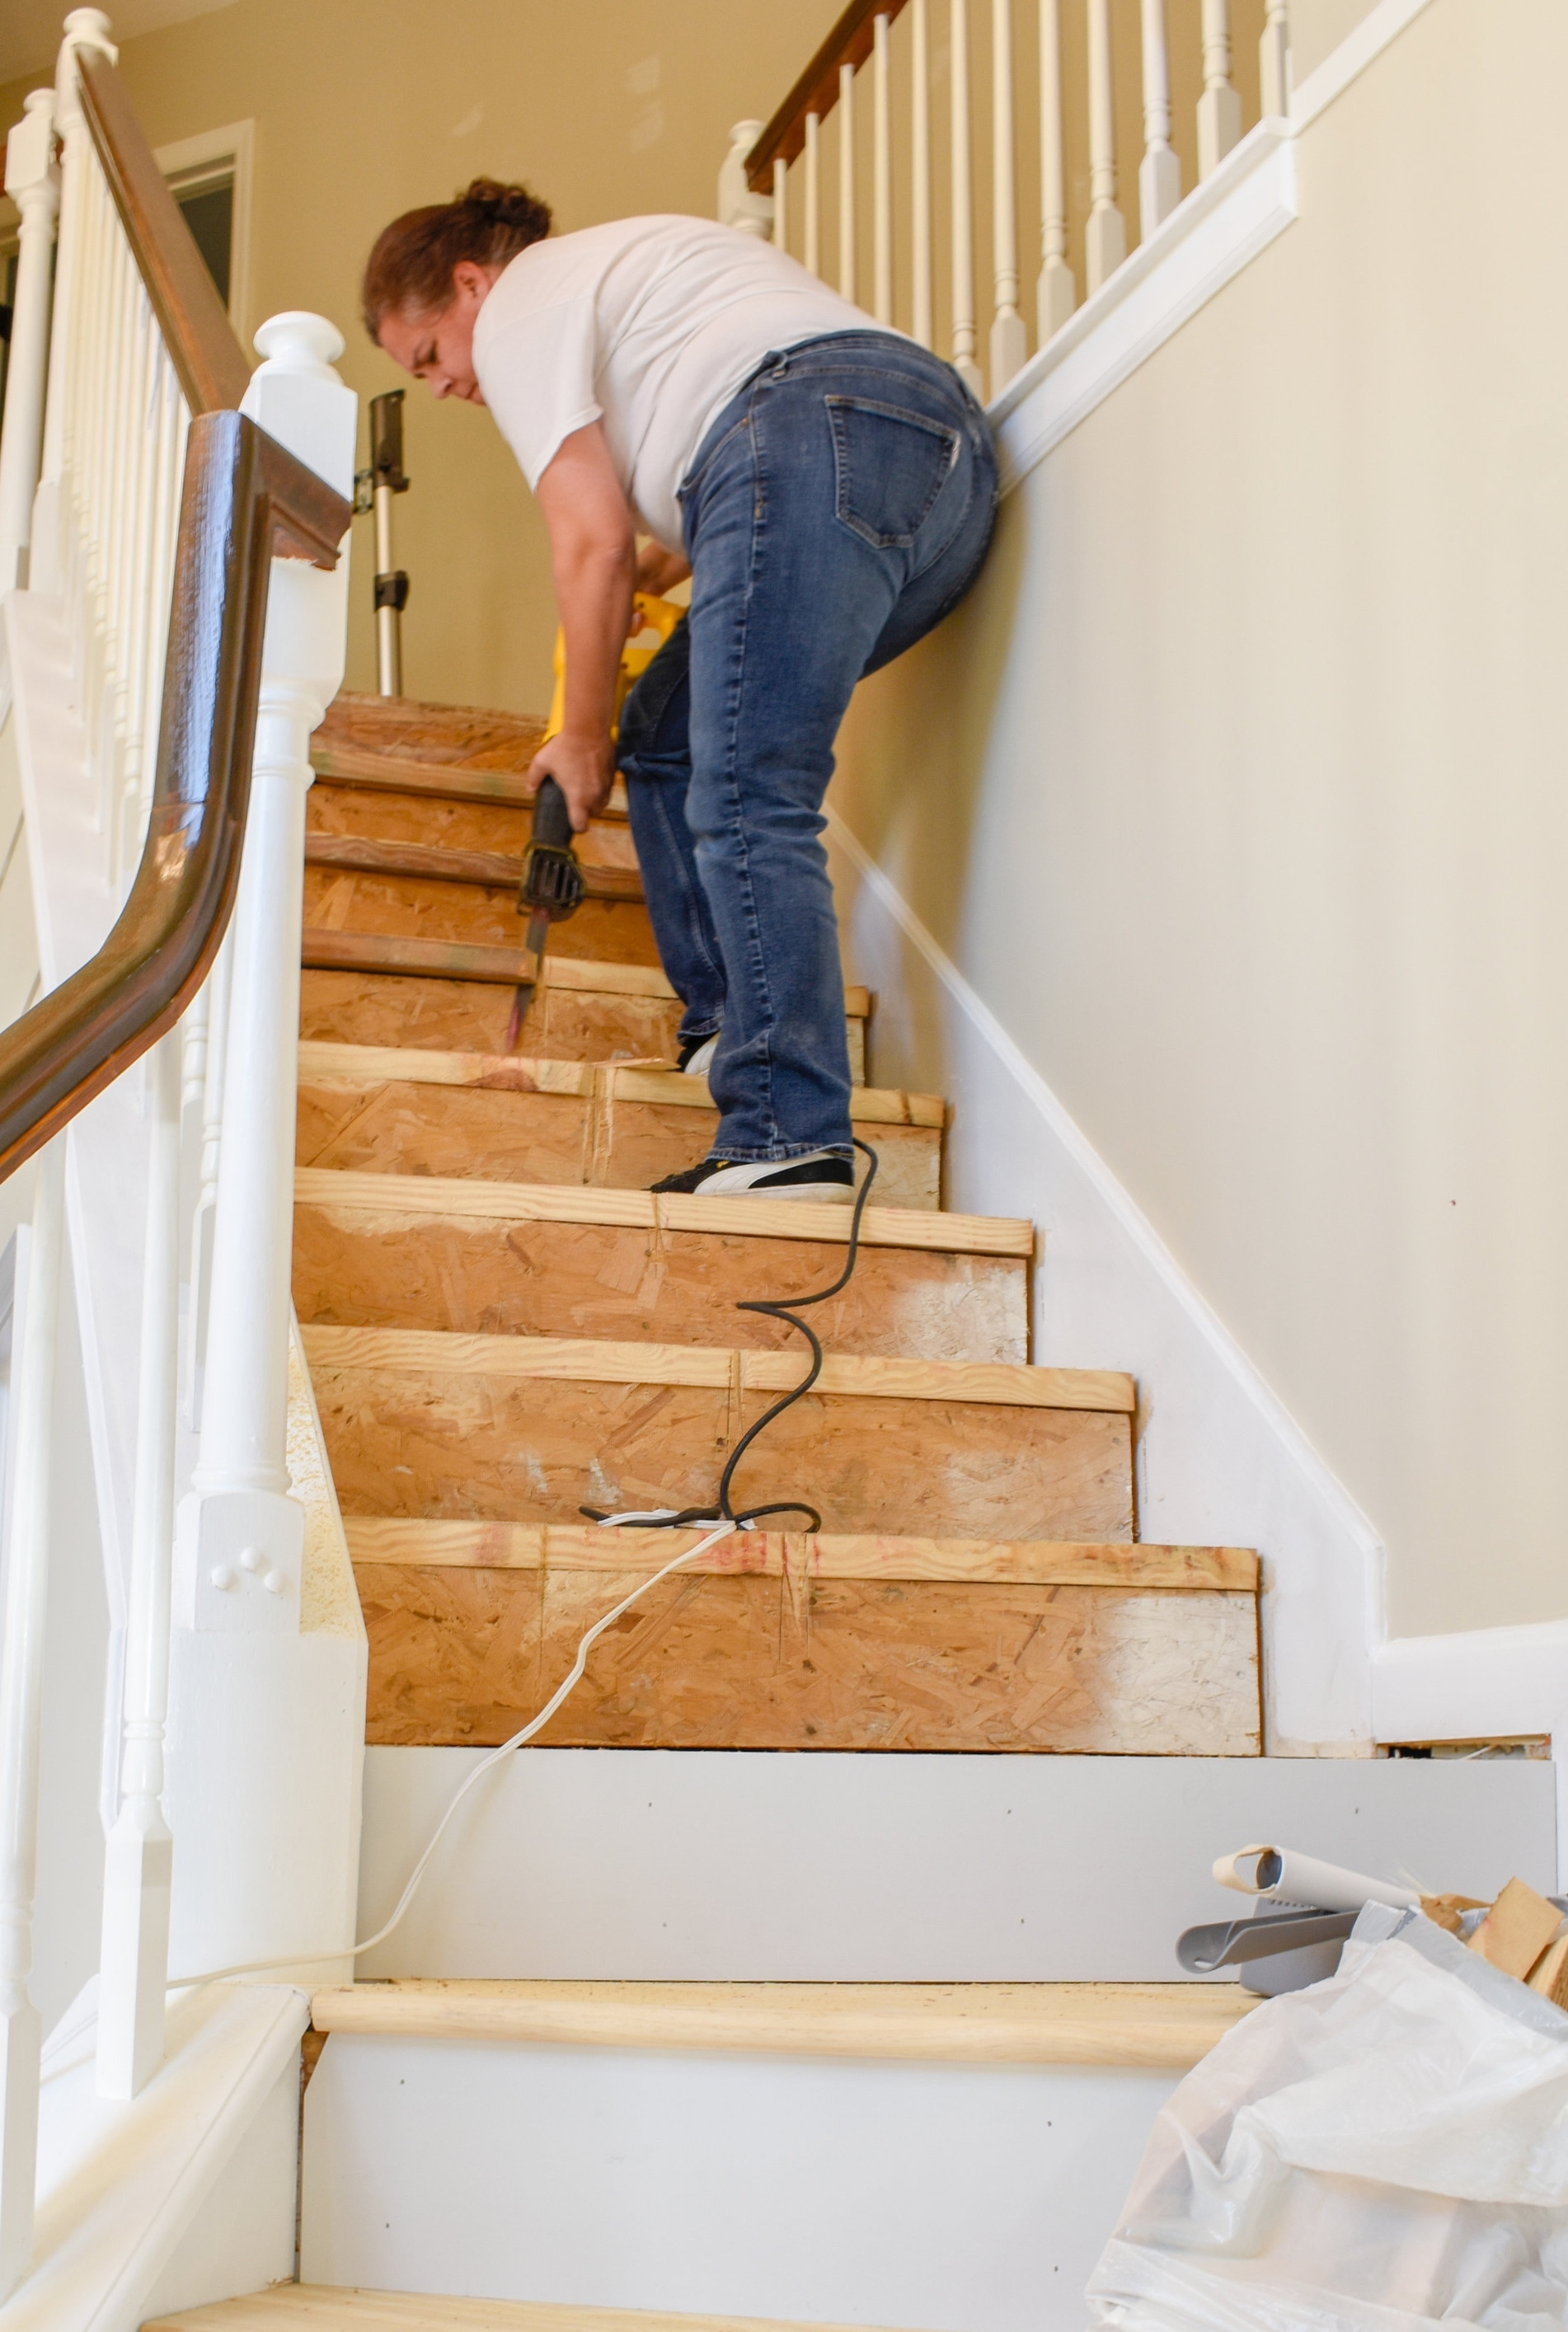 Diy Hardwood Staircase Makeover Replacing Carpet With Wood Treads | Replacing Particle Board Stair Treads | Basement Stairs | Carpeted Stairs | Plywood | Stair Nosing | Stair Case